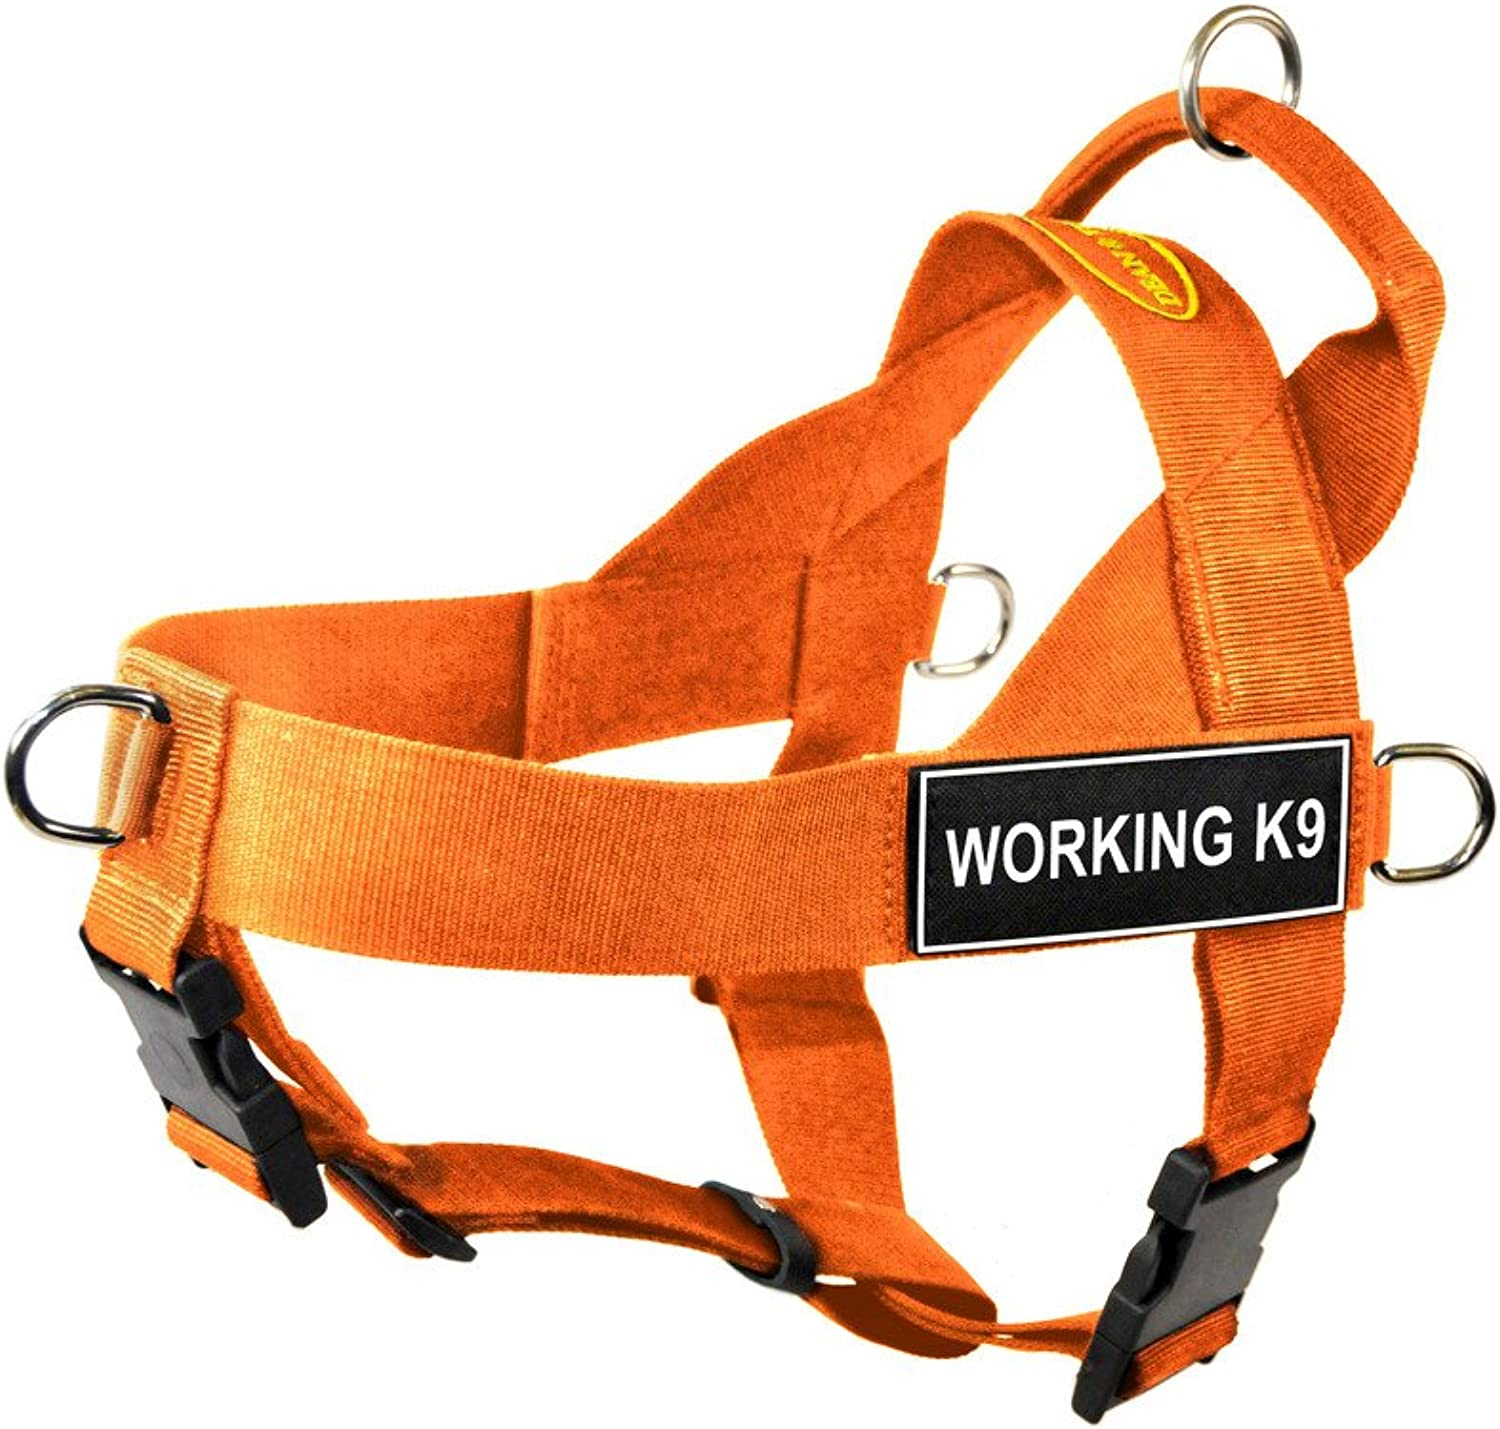 Dean & Tyler DT Universal No Pull Dog Harness with Working K9 Patches, orange, XSmall